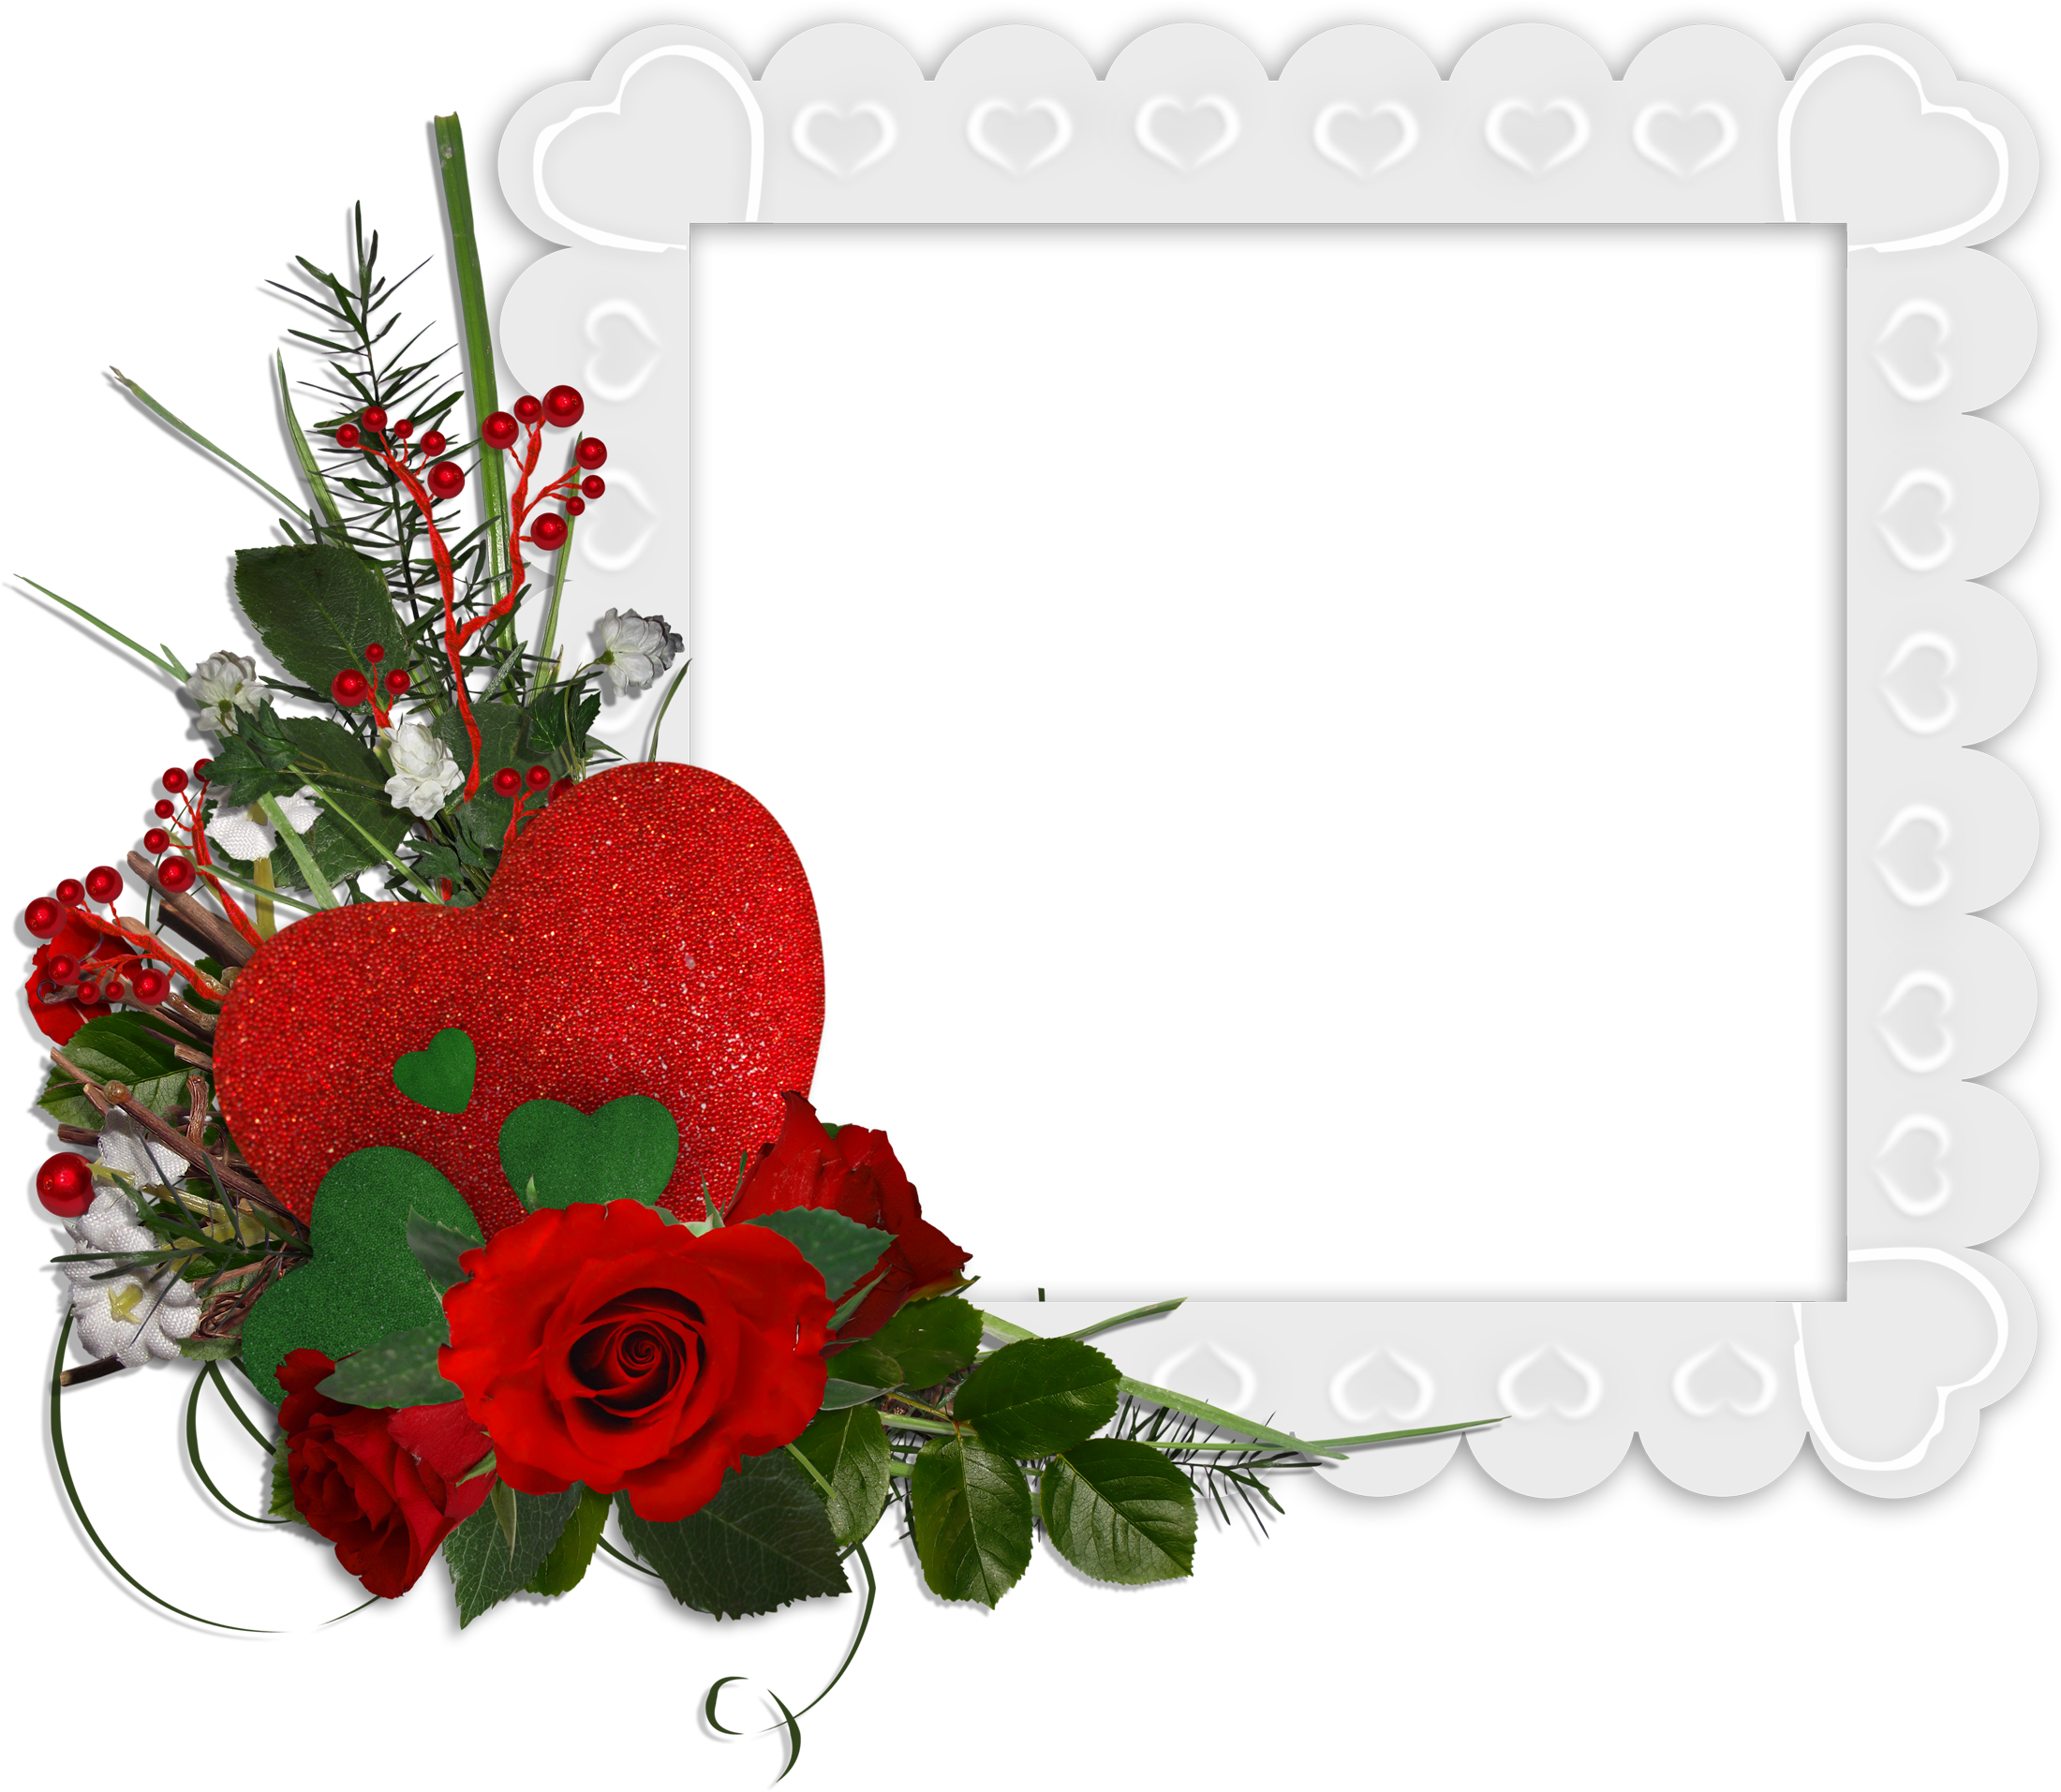 Red Flower clipart nice view #9